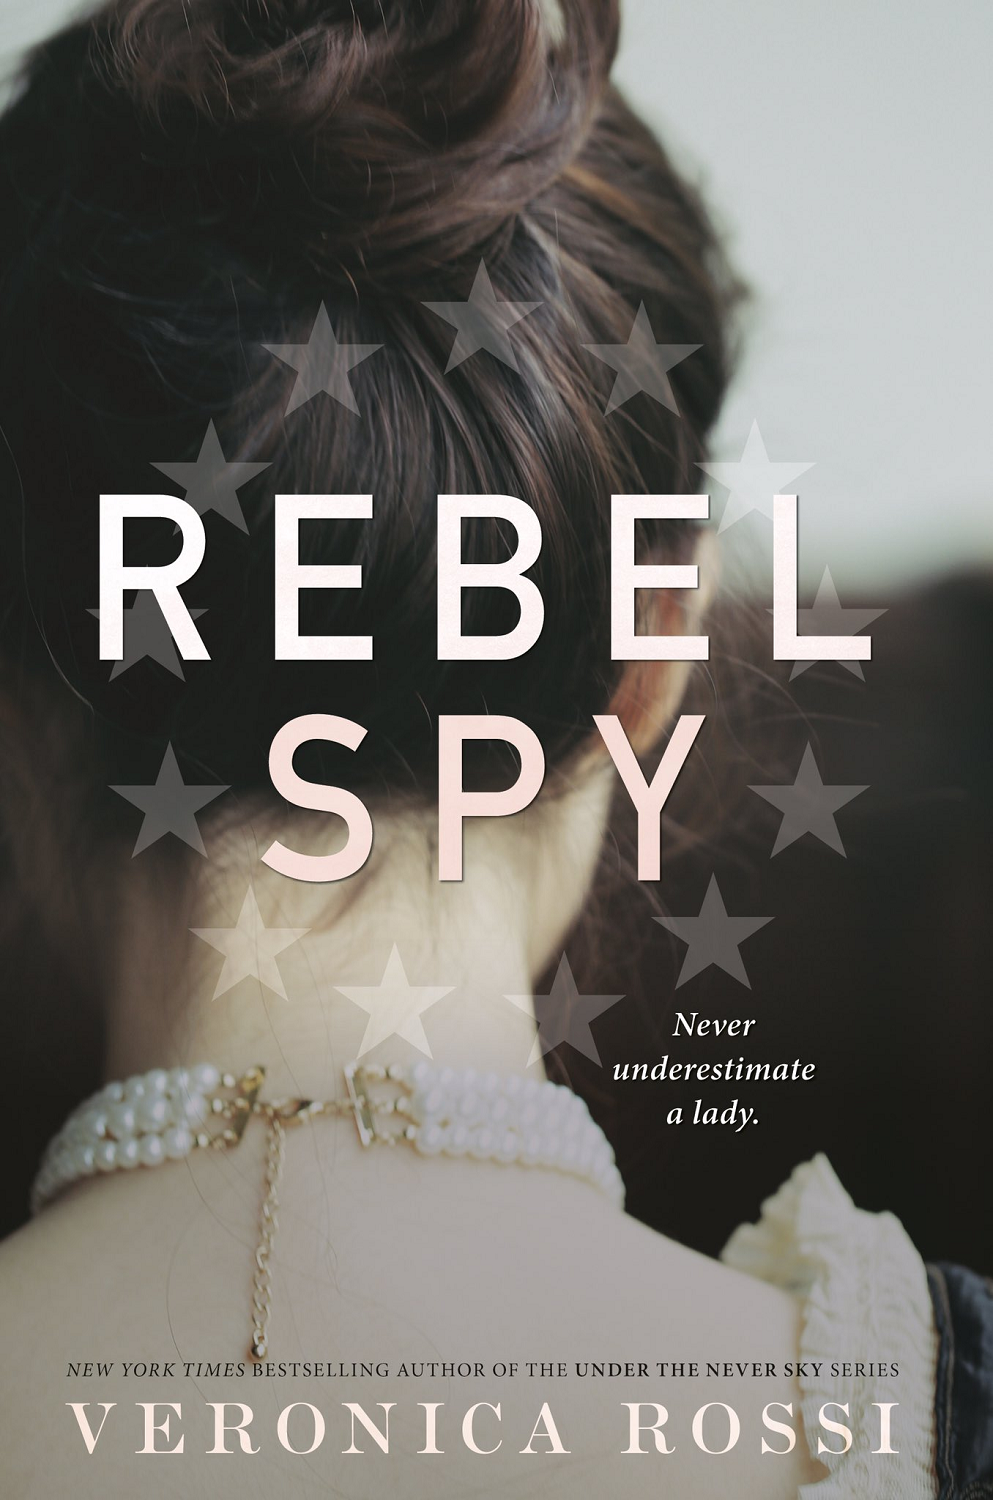 Rebel Spy by Veronica Rossi